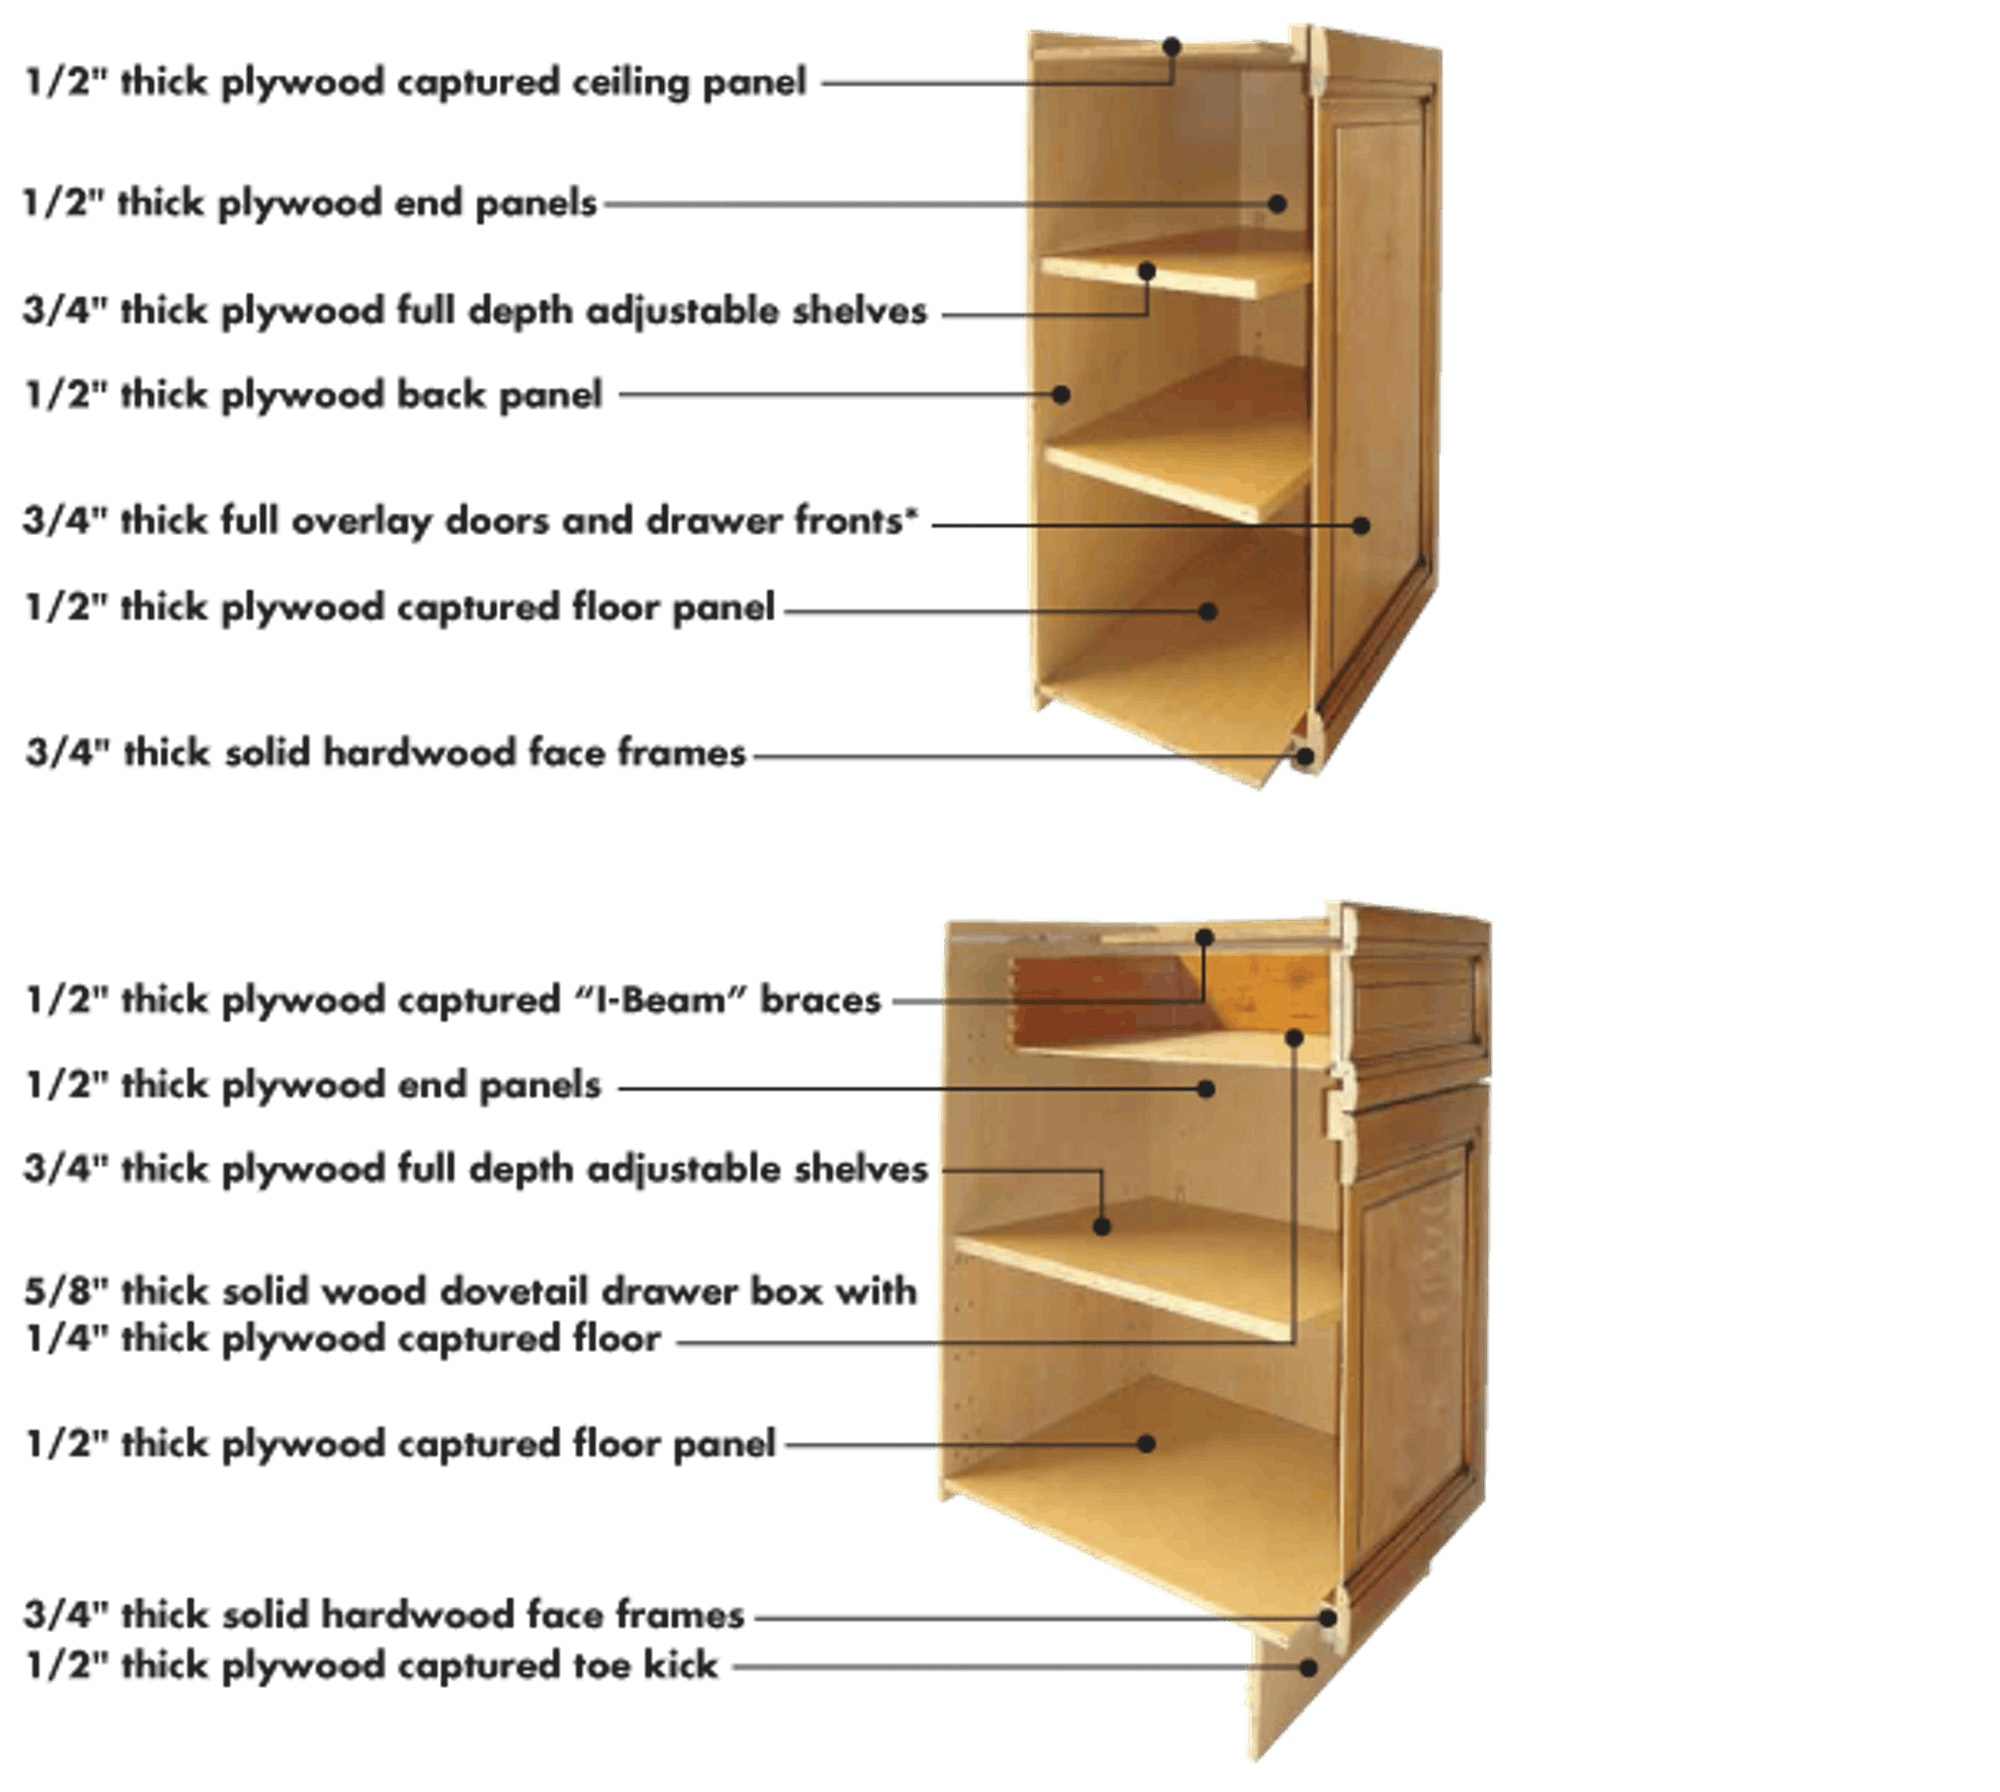 100 drawer boxes for kitchen cabinets the kitchen for Kitchen cabinets vs drawers